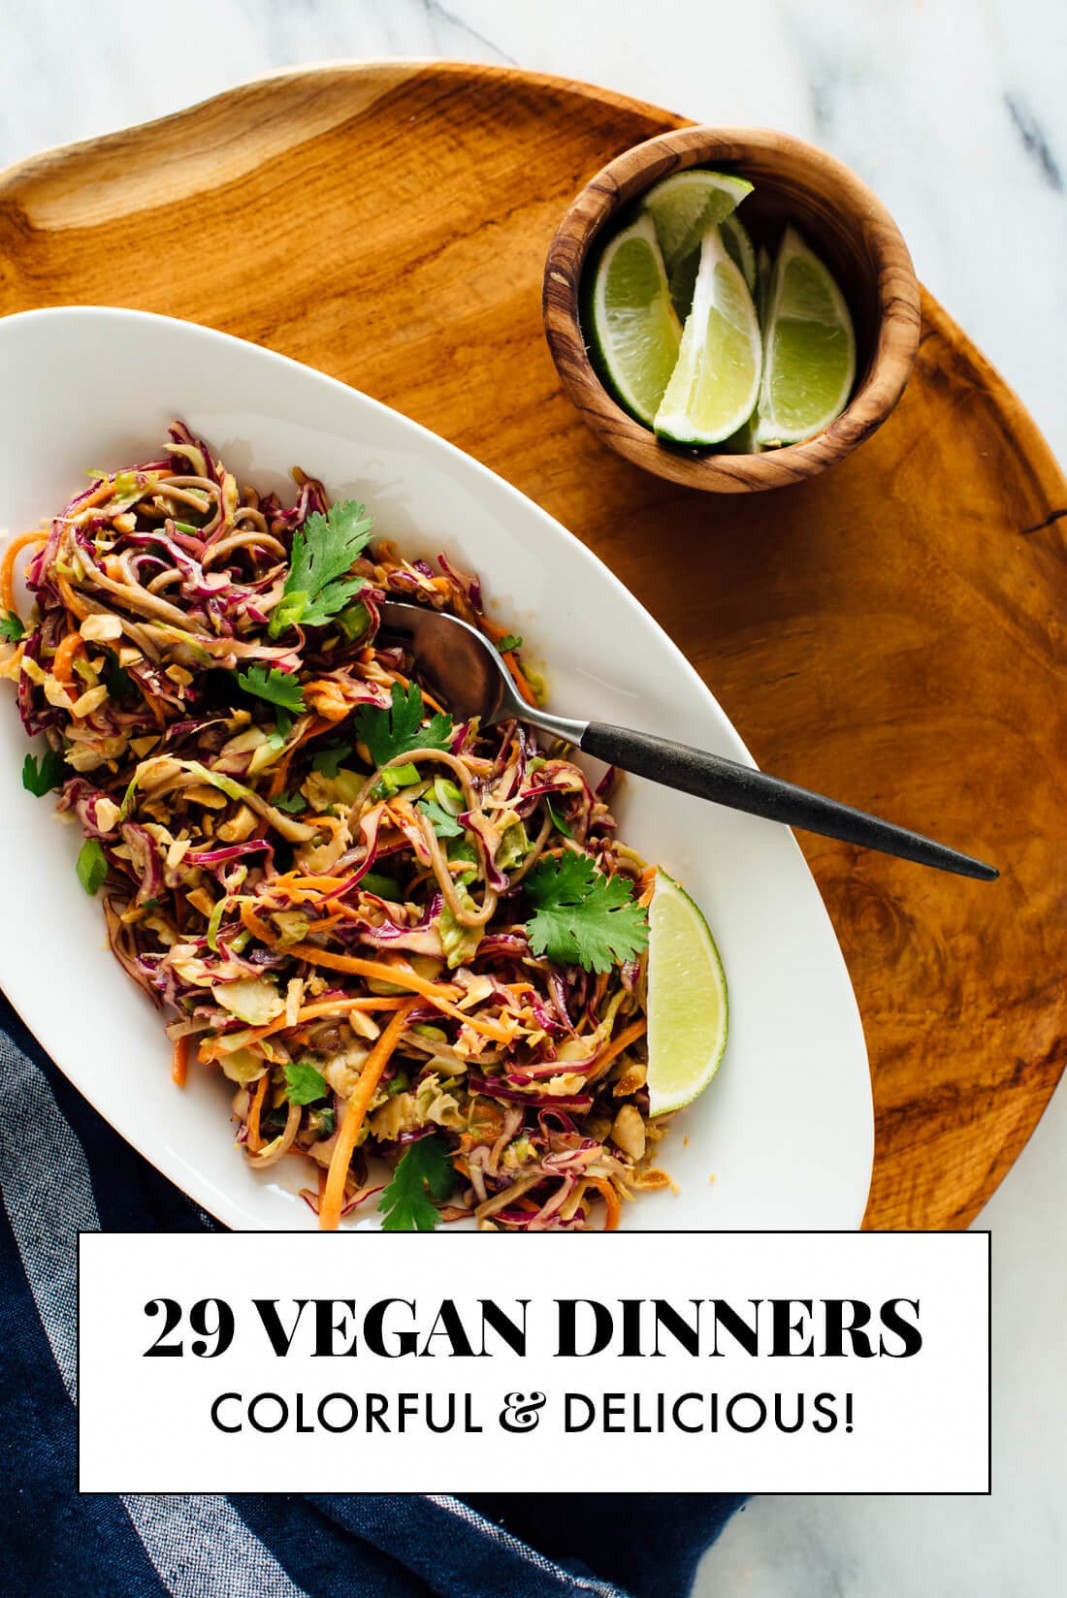 15 Delicious Vegan Dinner Recipes - Cookie and Kate - vegan recipes dinner easy